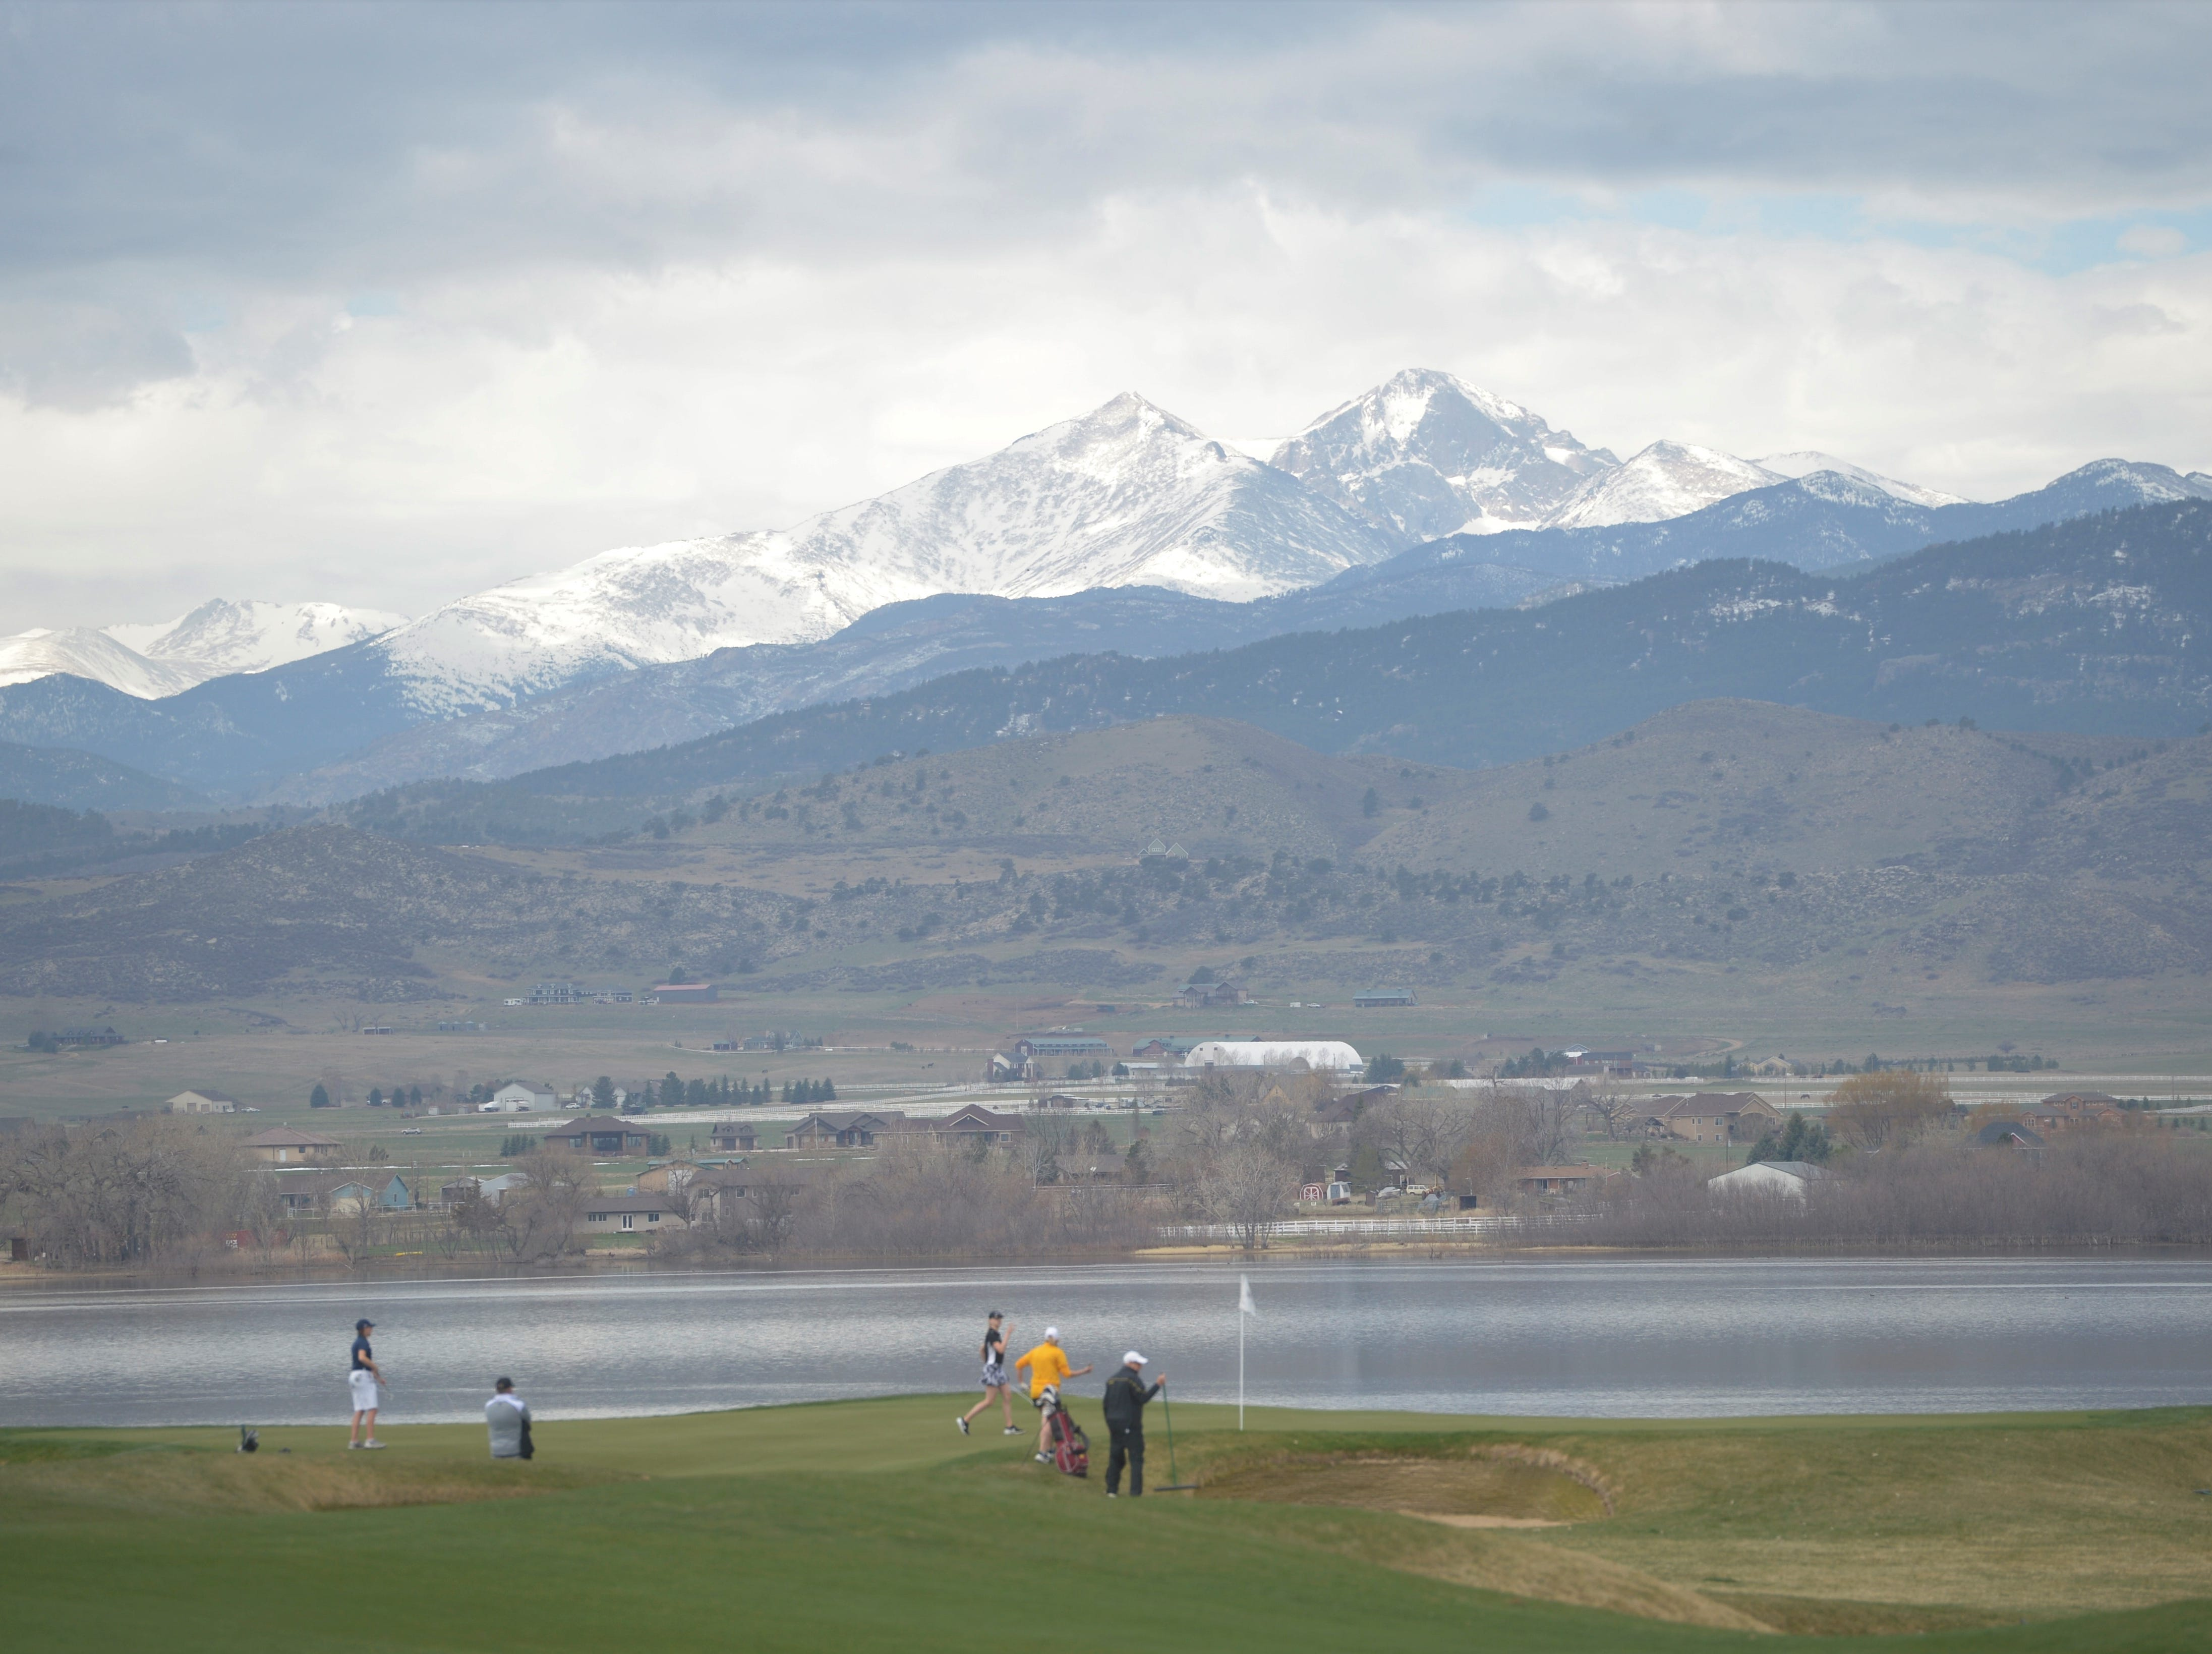 Windsor won the Tri-Valley League match at TPC Colorado in Berthoud on Monday. The new course is the first Tournament Players Club course in the state. It's west of Berthoud with the Twin Peaks as a backdrop.